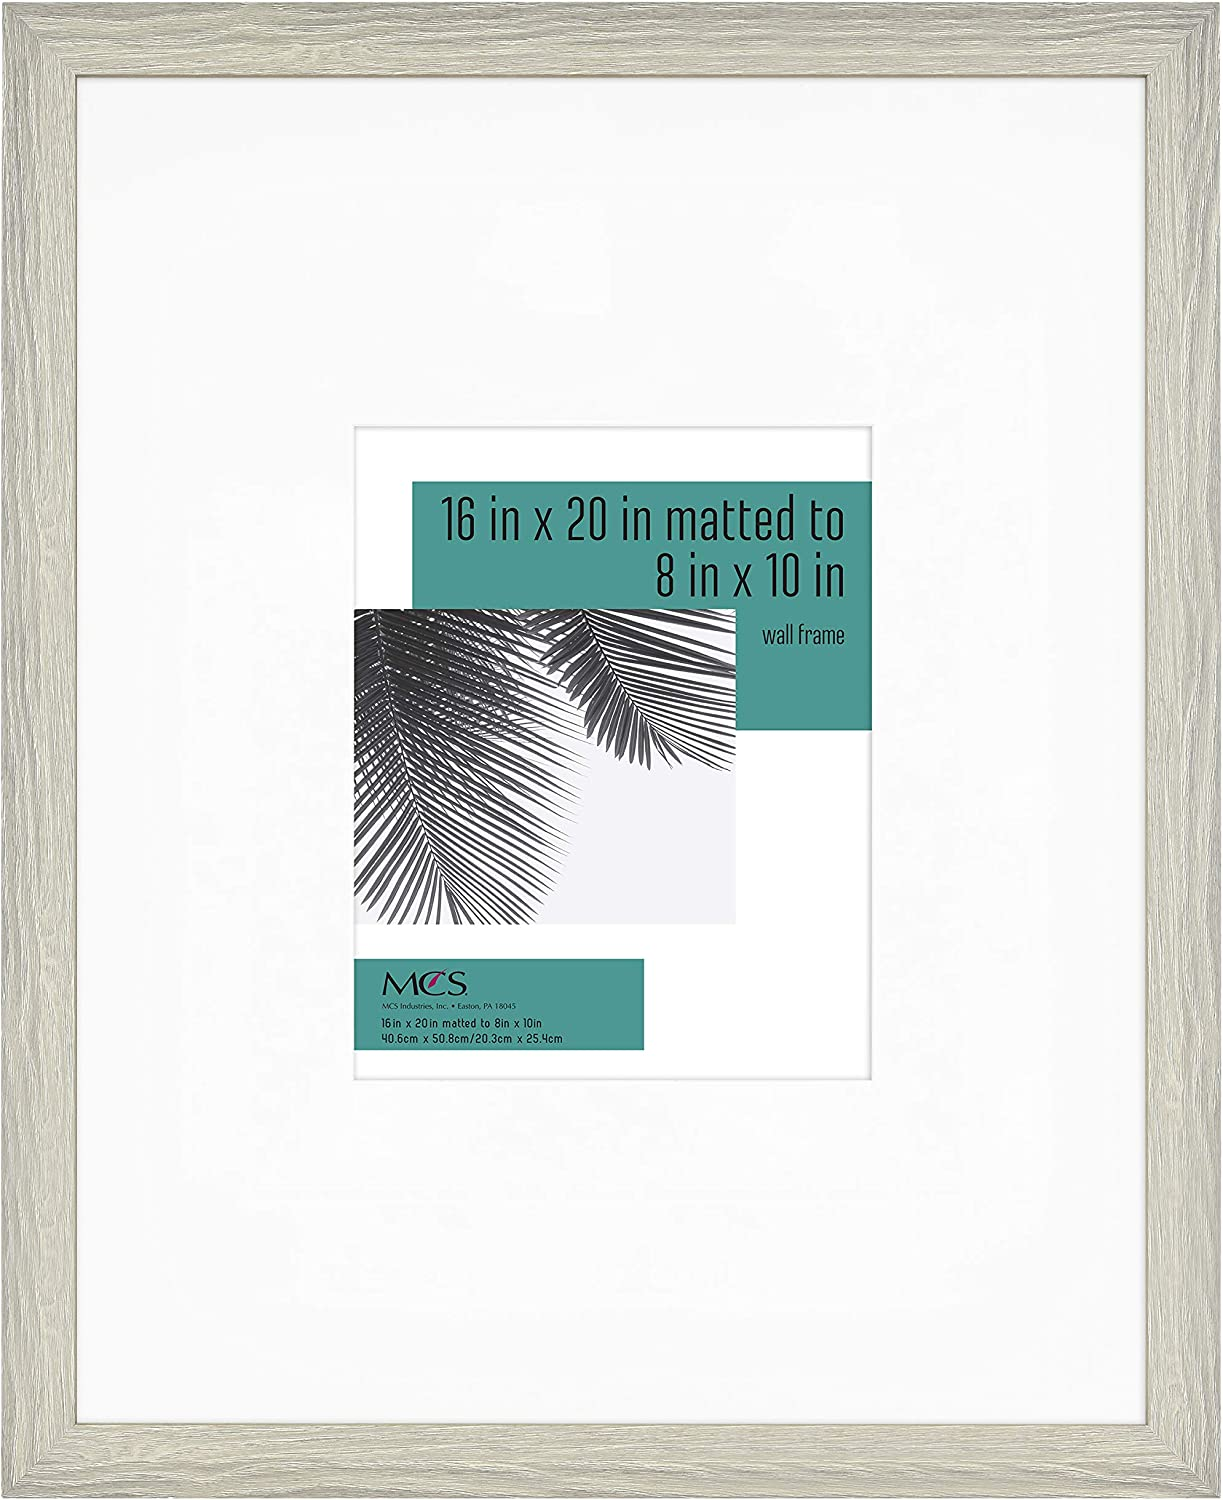 MCS Industries 63994 16x20 Inch Matted to 8x10 Inch, Gray Woodgrain Studio Gallery Frame, 16x20